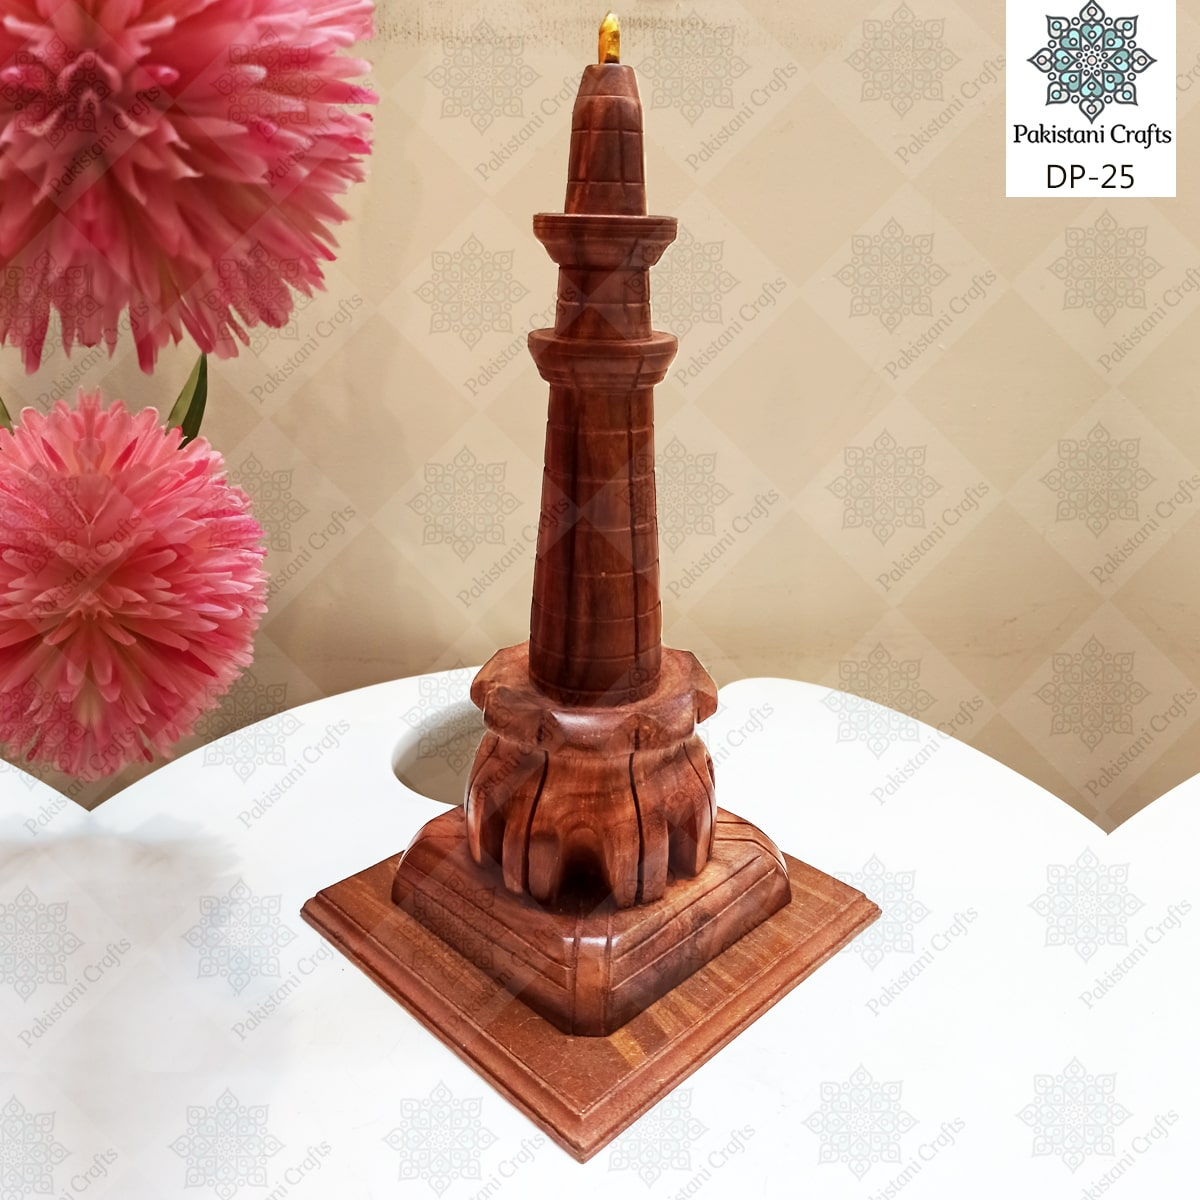 Wooden Minar e Pakistan Decoration Piece